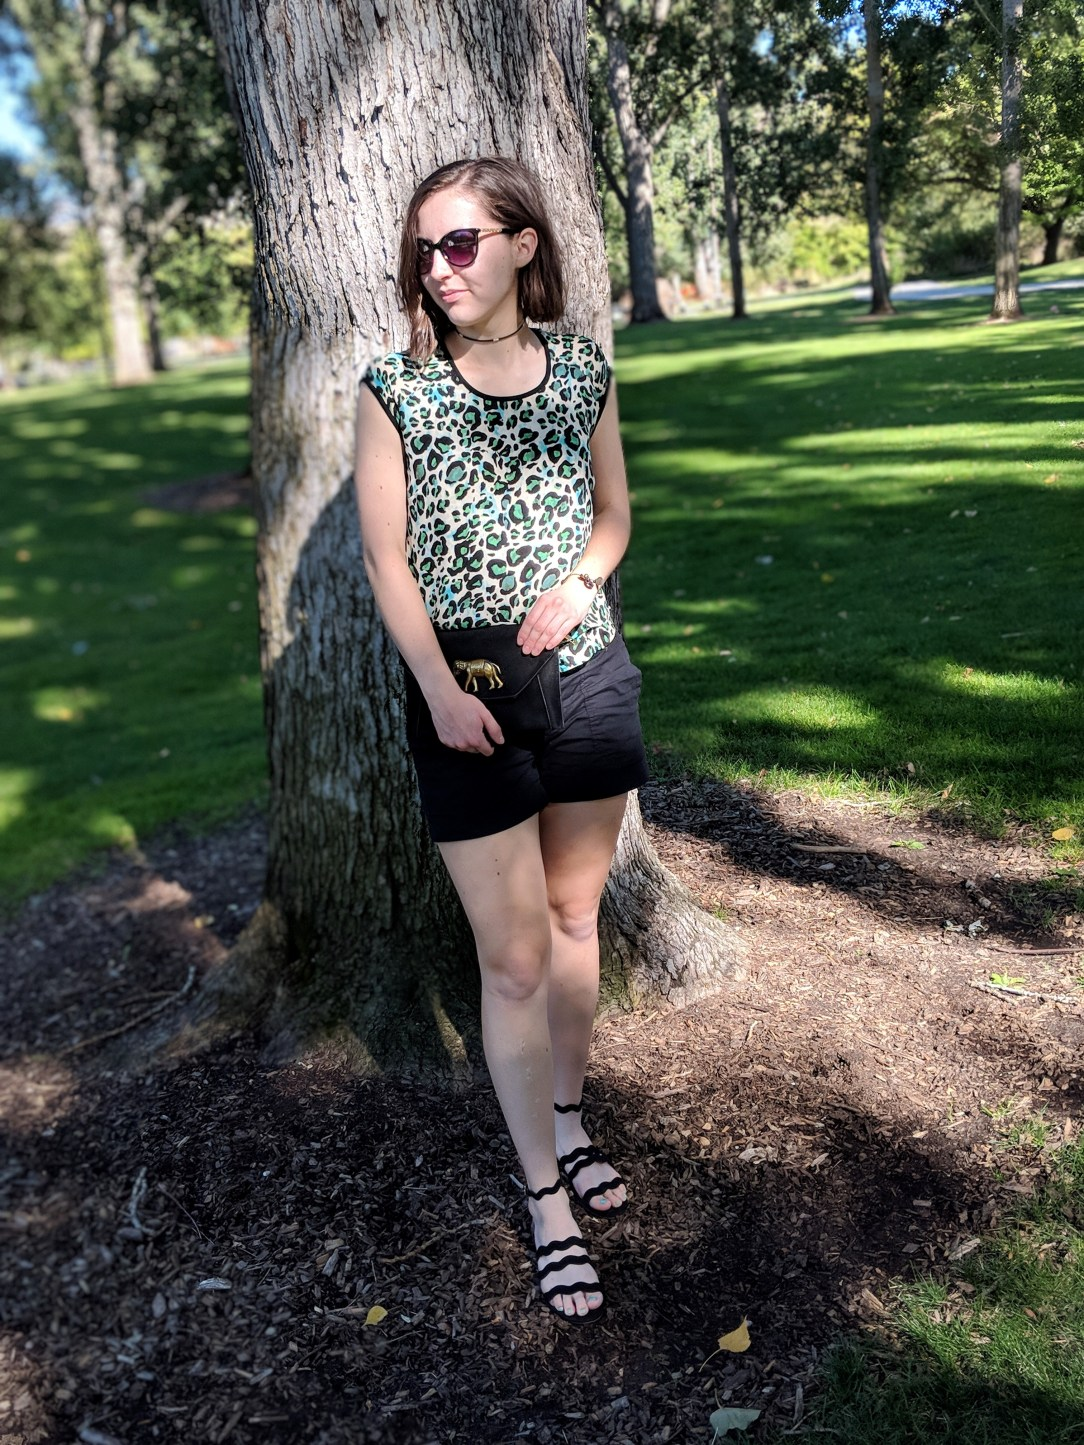 green leopard blouse, black shorts, black sandals